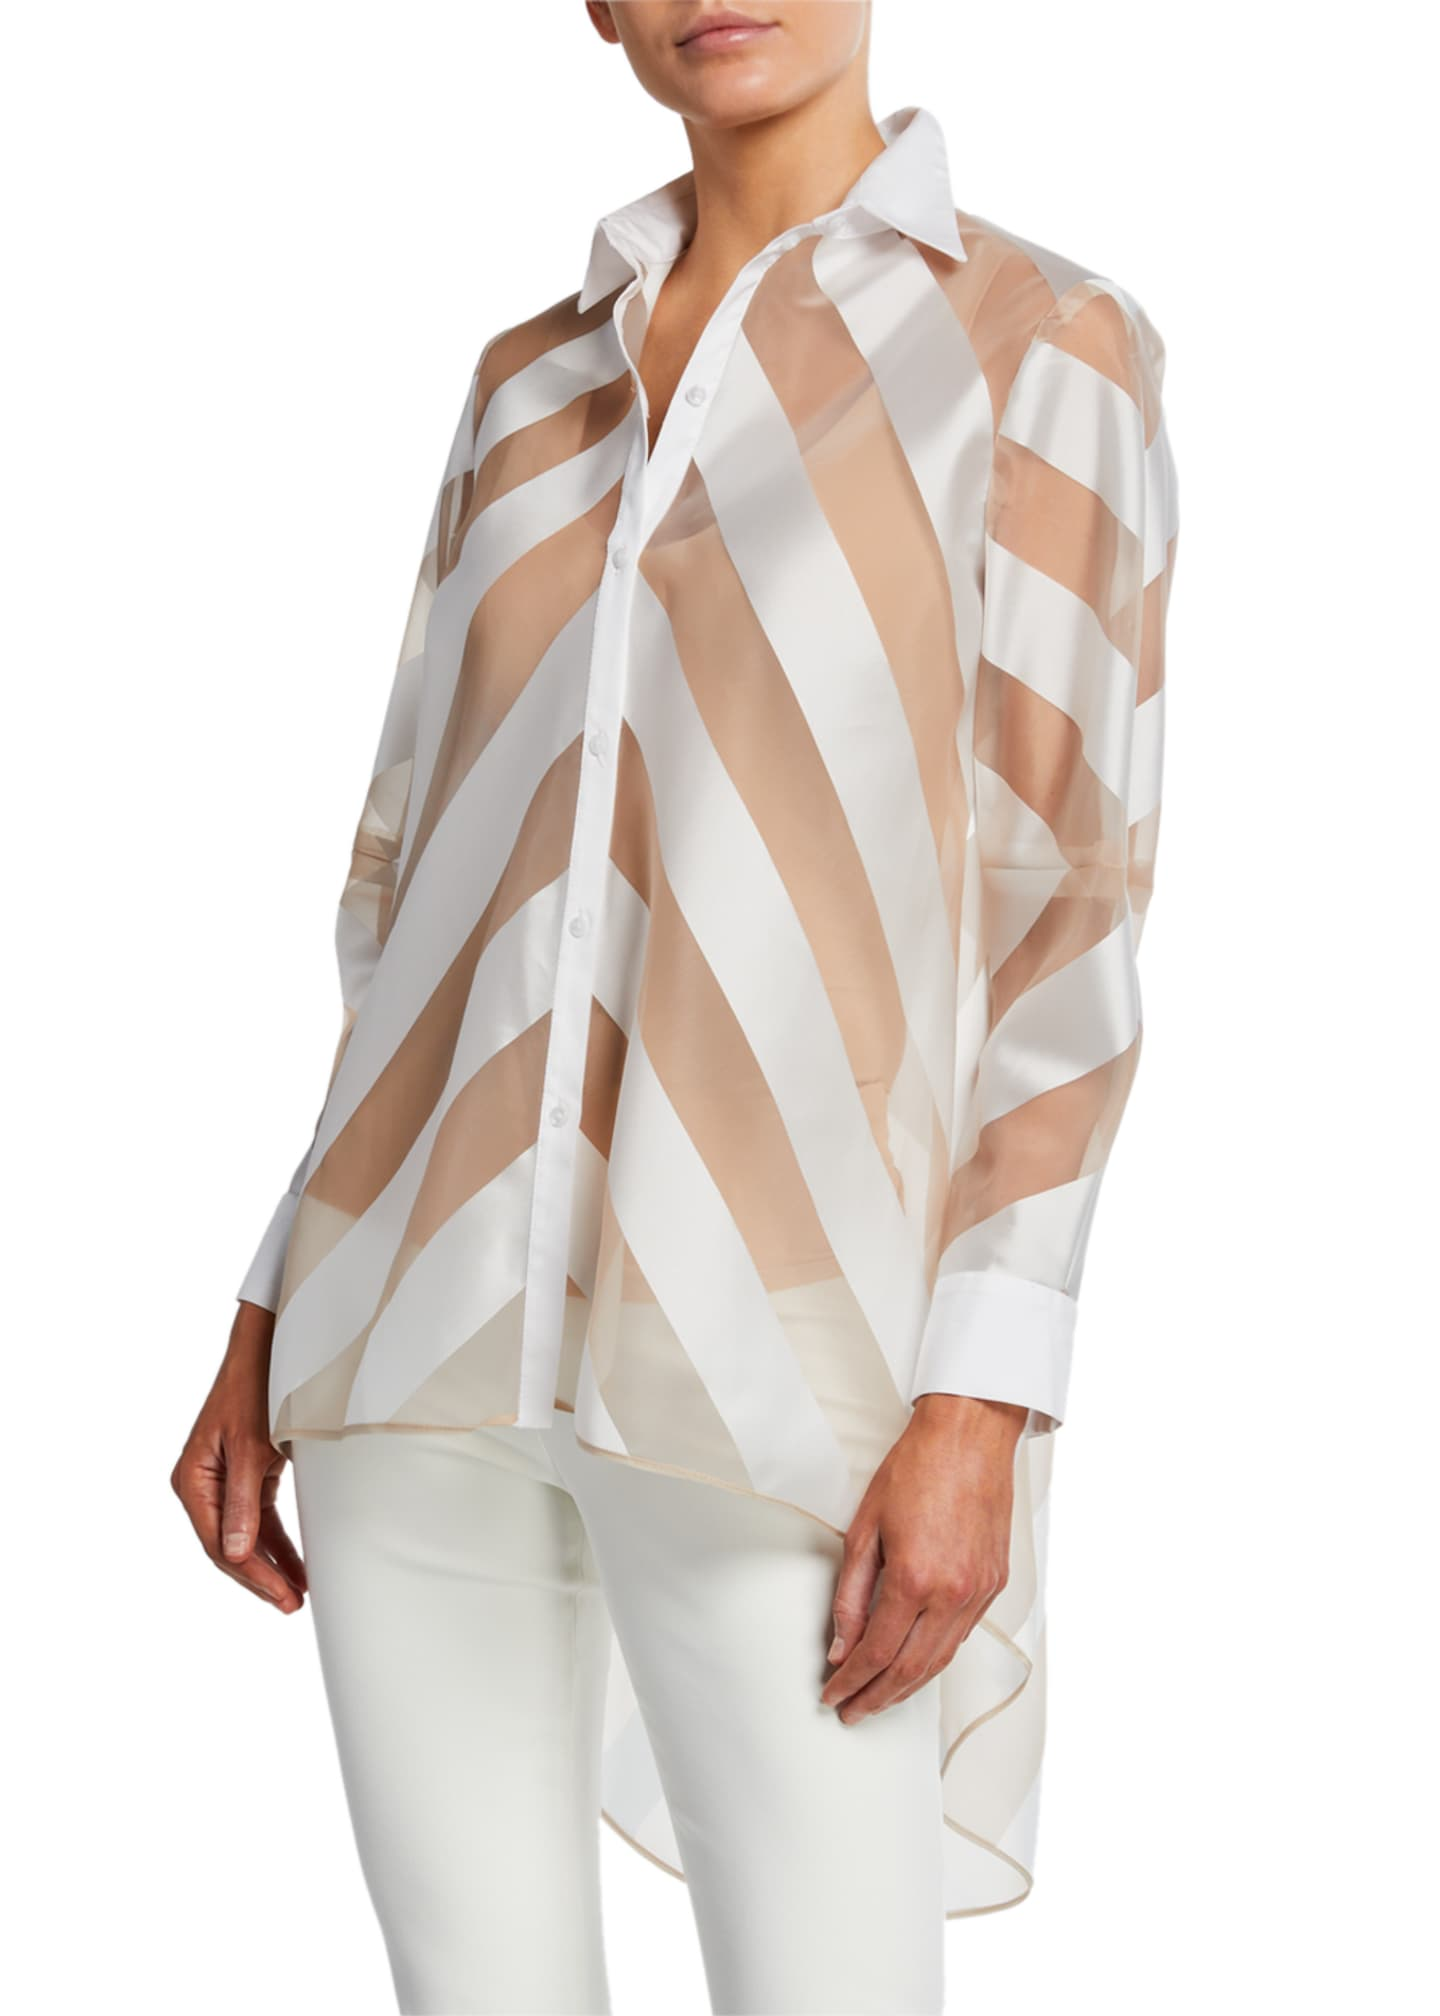 Lela Rose Sheer-Striped High-Low Button-Front Shirt